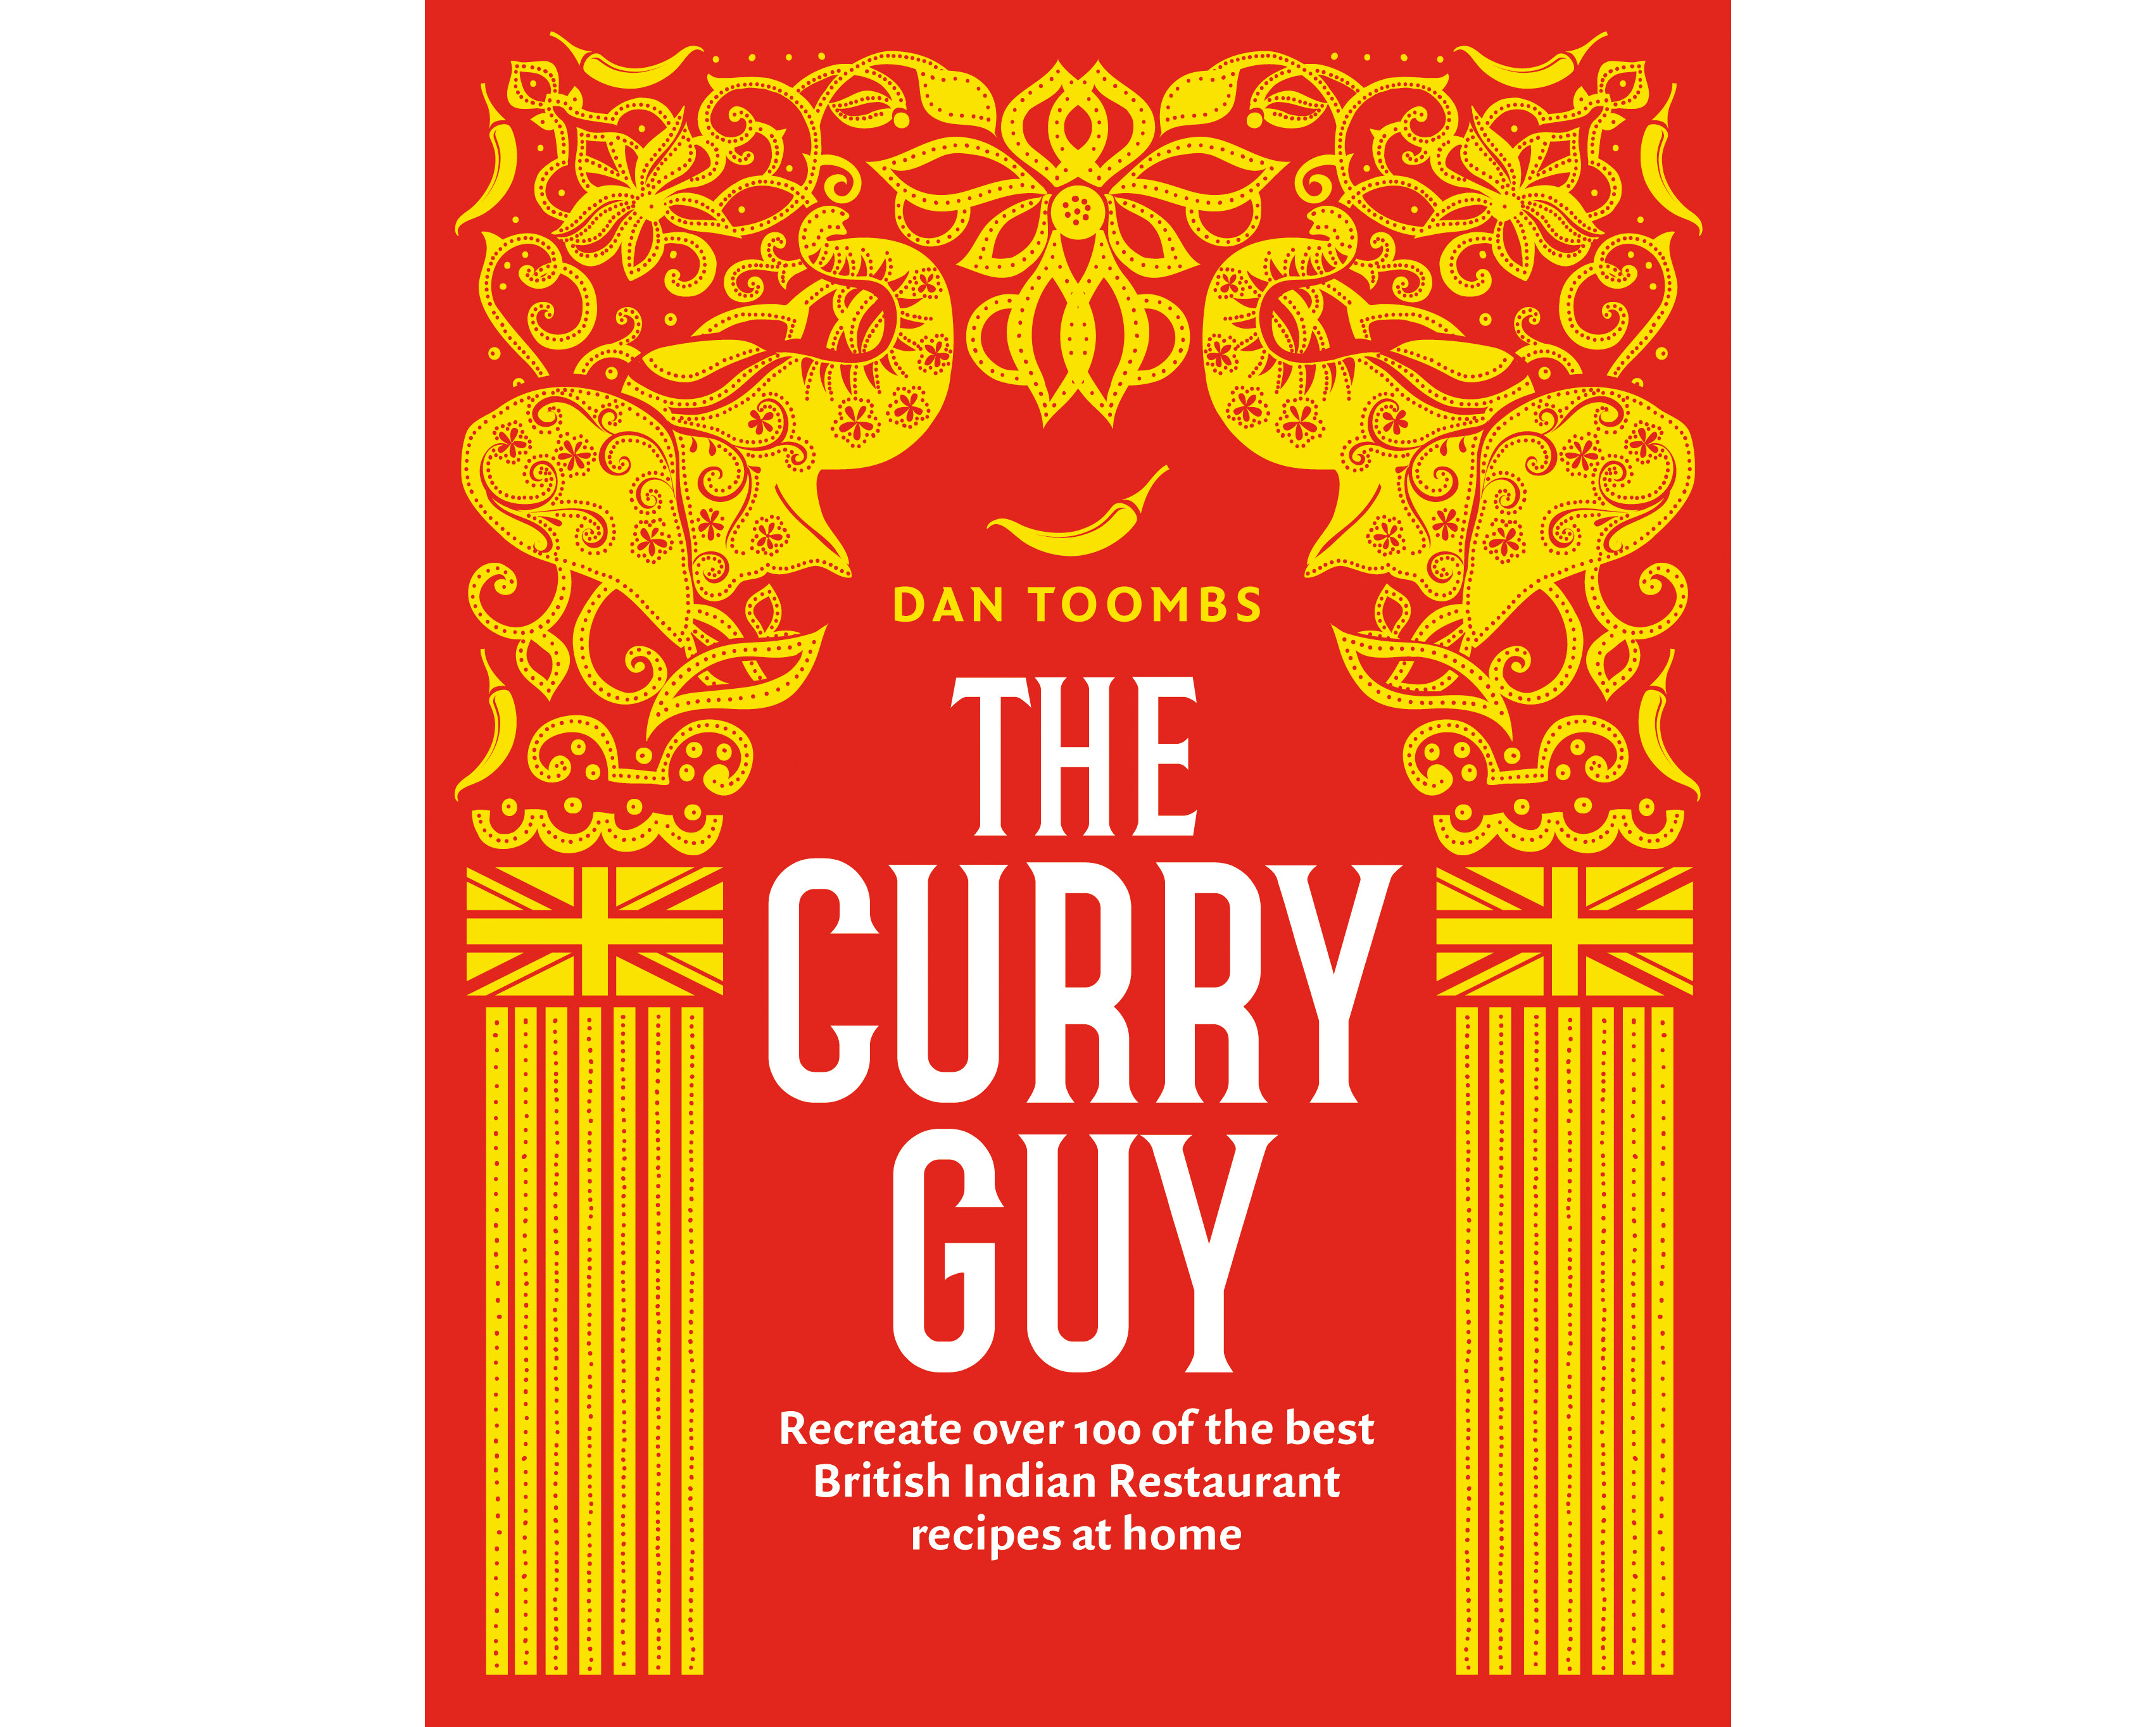 The Curry Guy book cover (Quadrille/PA)